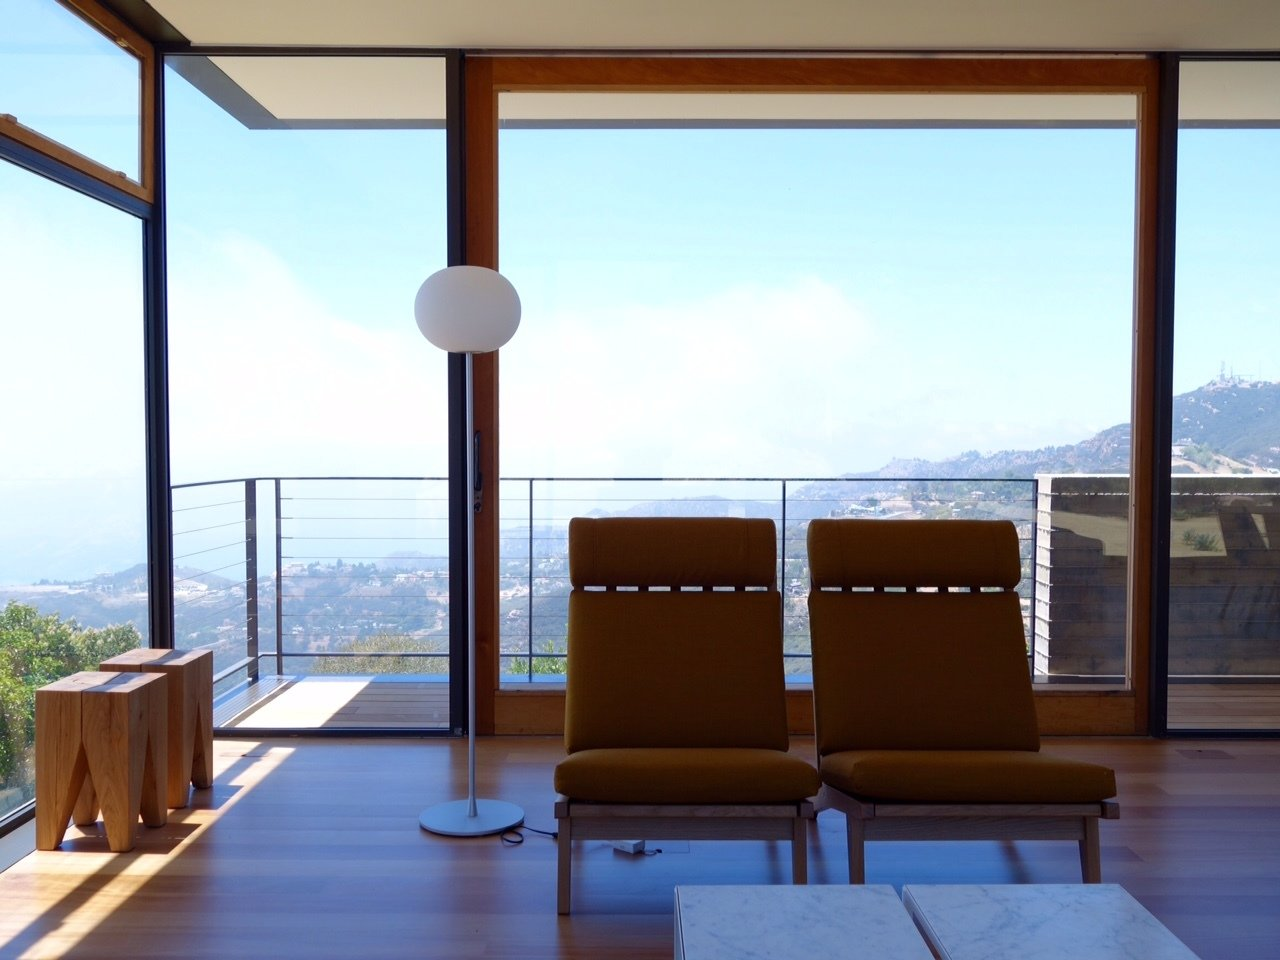 Photo 7 of 13 in Take Your Next Vacation in a Midcentury Home in the Santa Monica Mountains